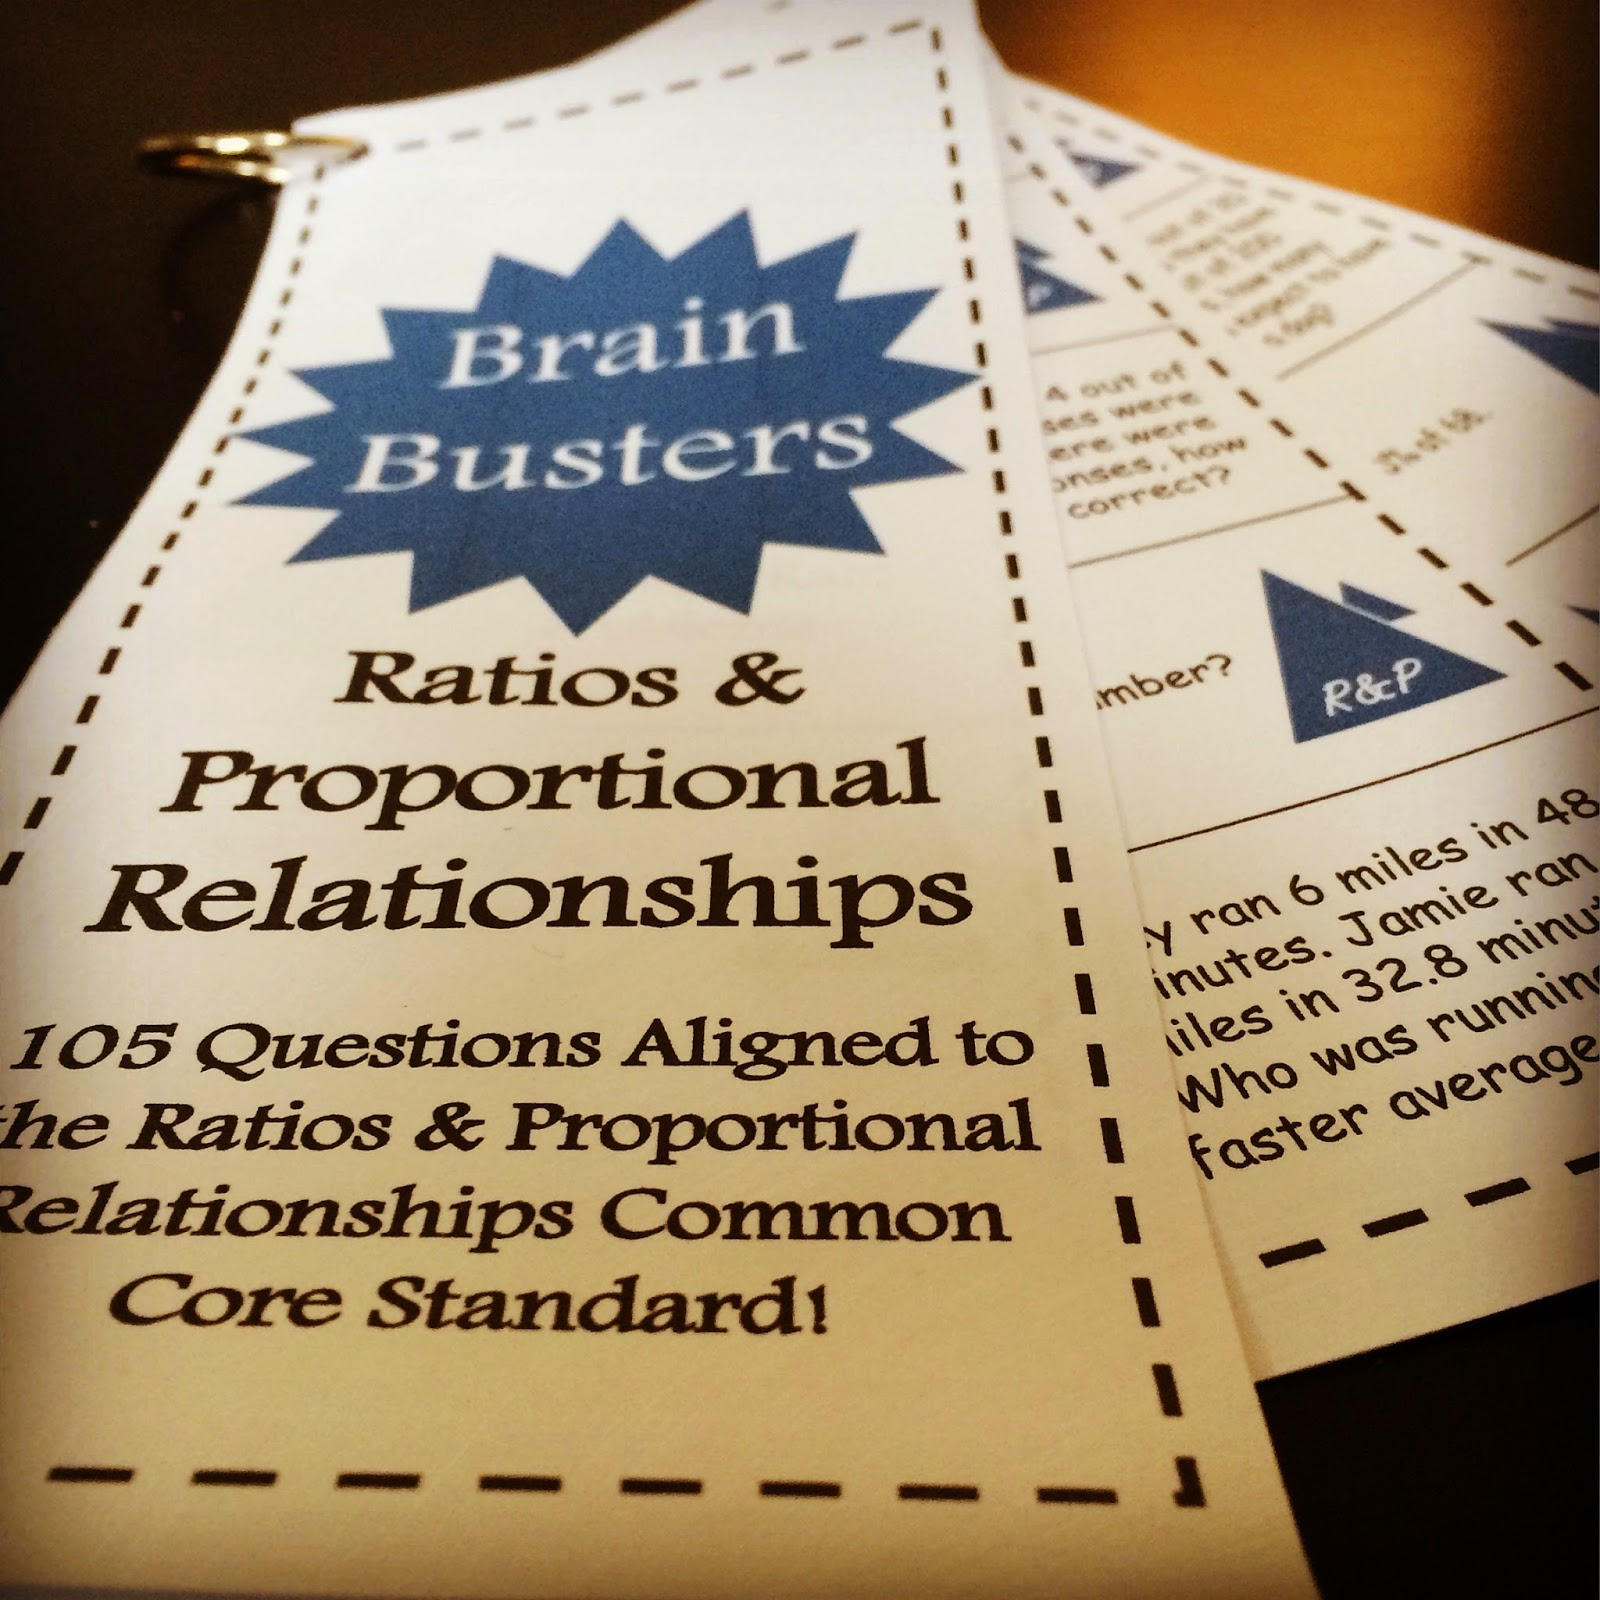 http://www.teacherspayteachers.com/Product/Math-Brain-Busters-Ratios-and-Proportional-Relationships-1641999